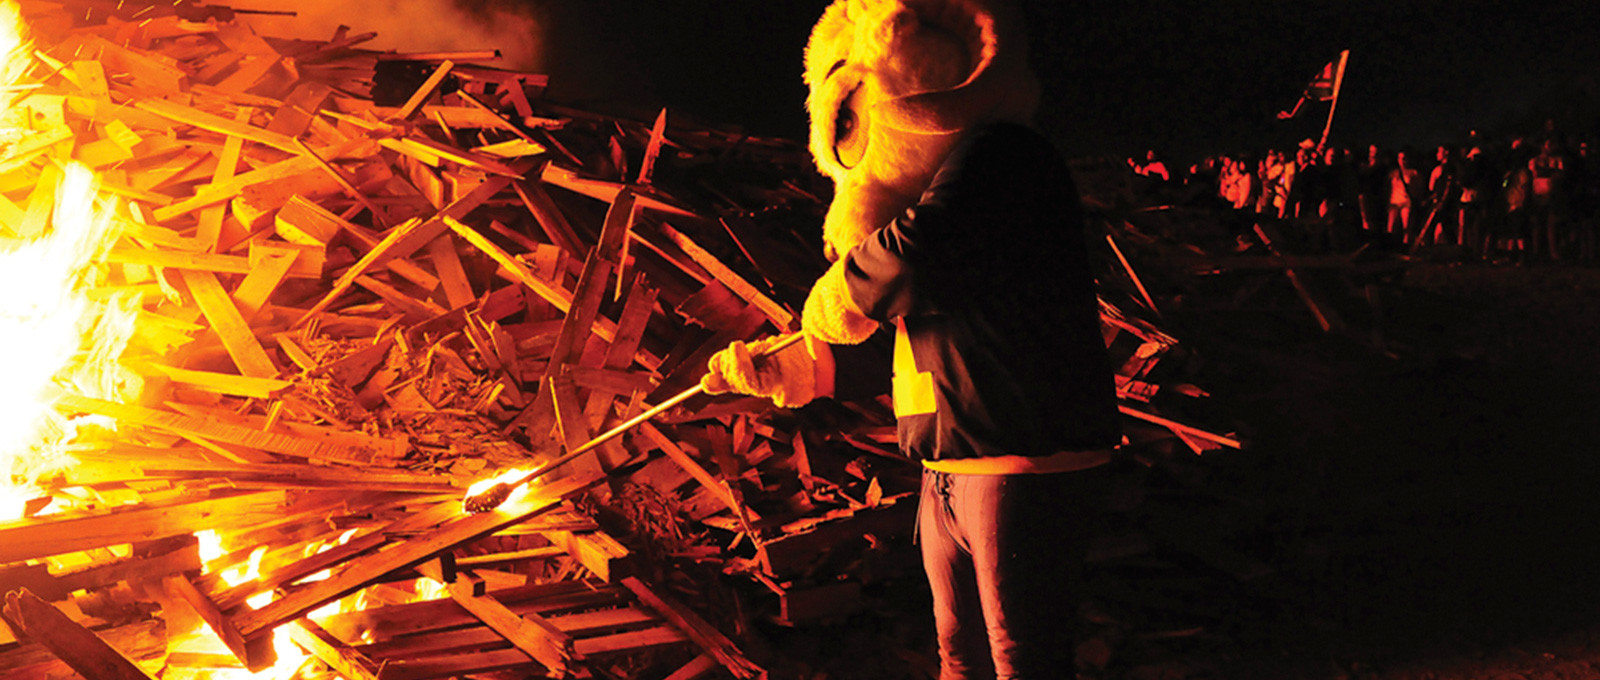 Roscoe D. Ram helps light the Homecoming Bonfire, a longstanding tradition at Angelo State University. Symbolically, Rosco...